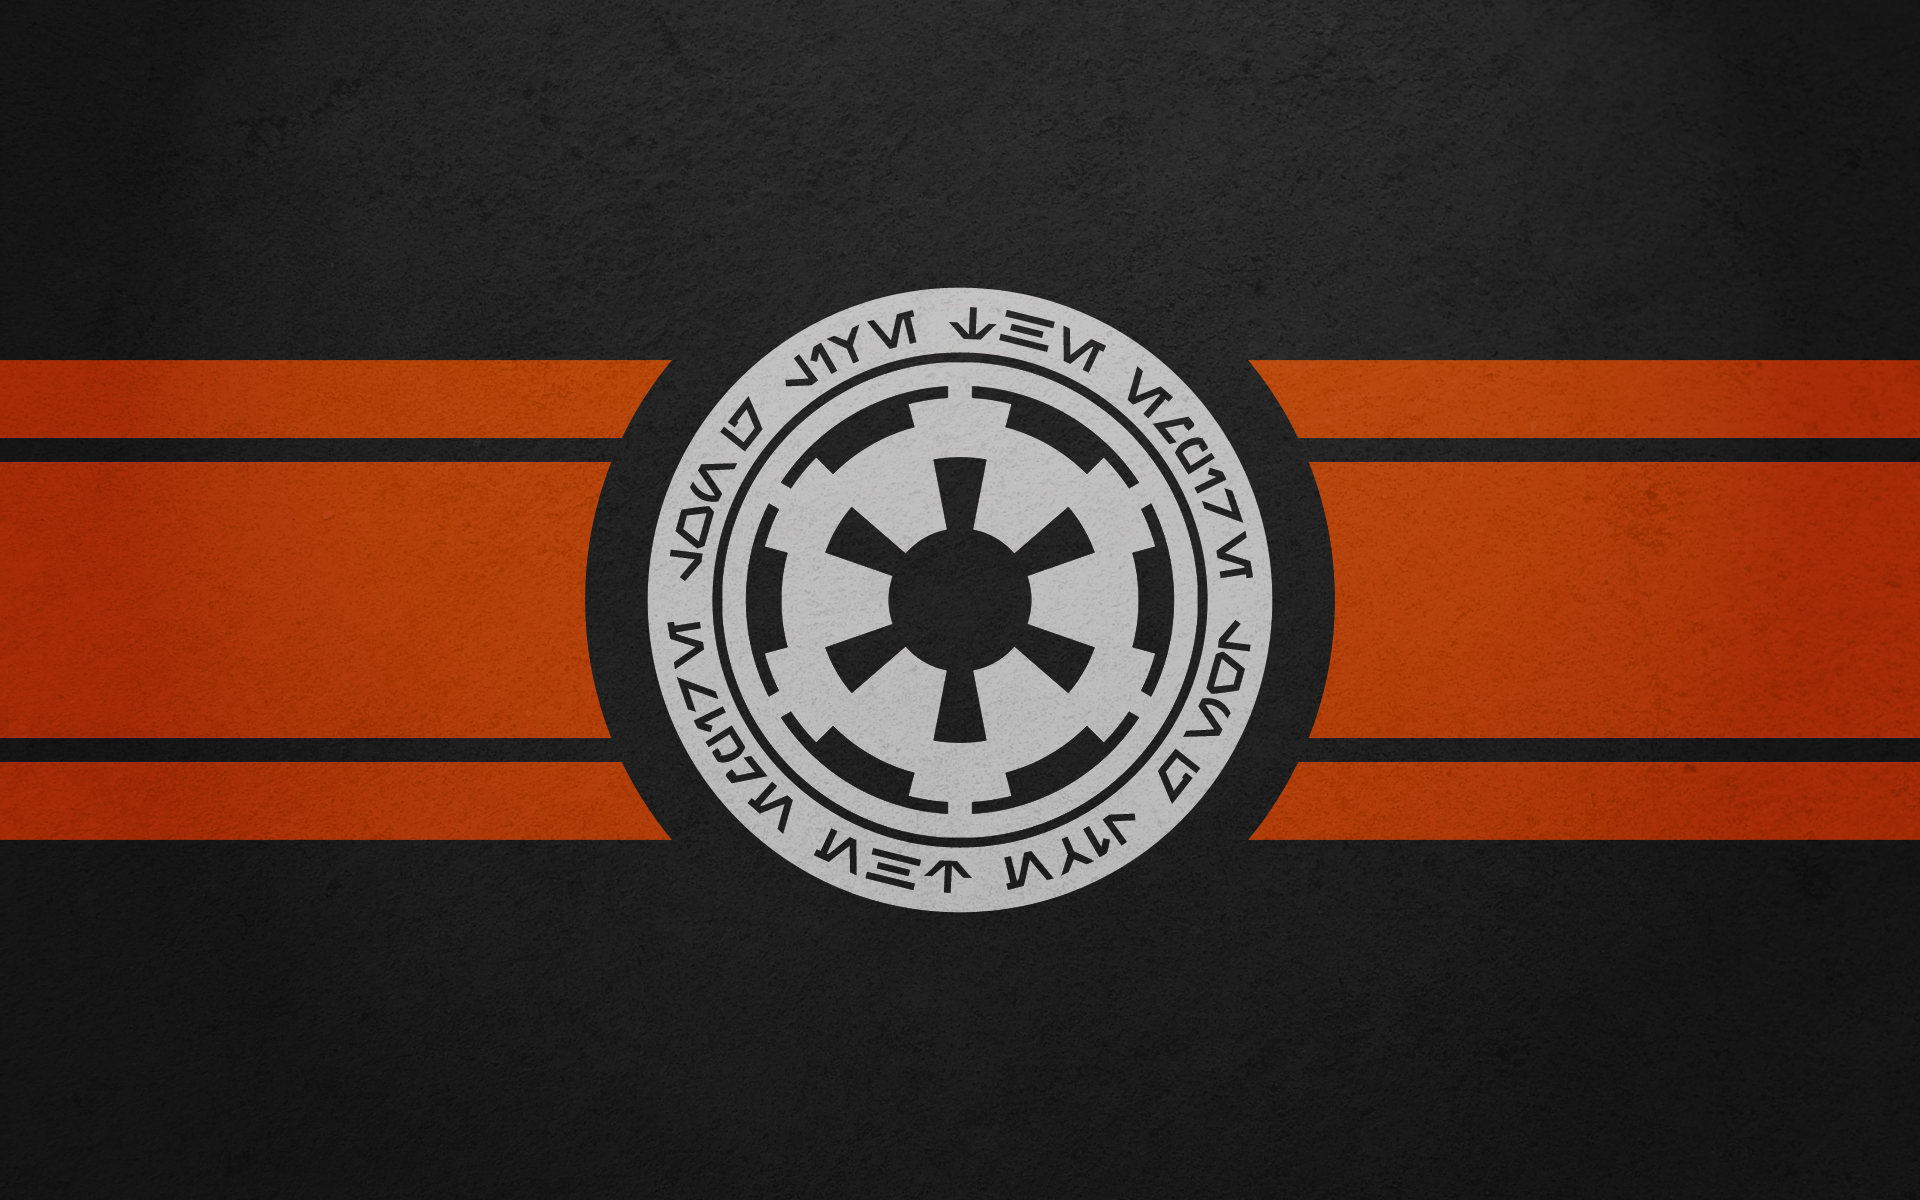 Star Wars Imperial   1754347 1920x1200